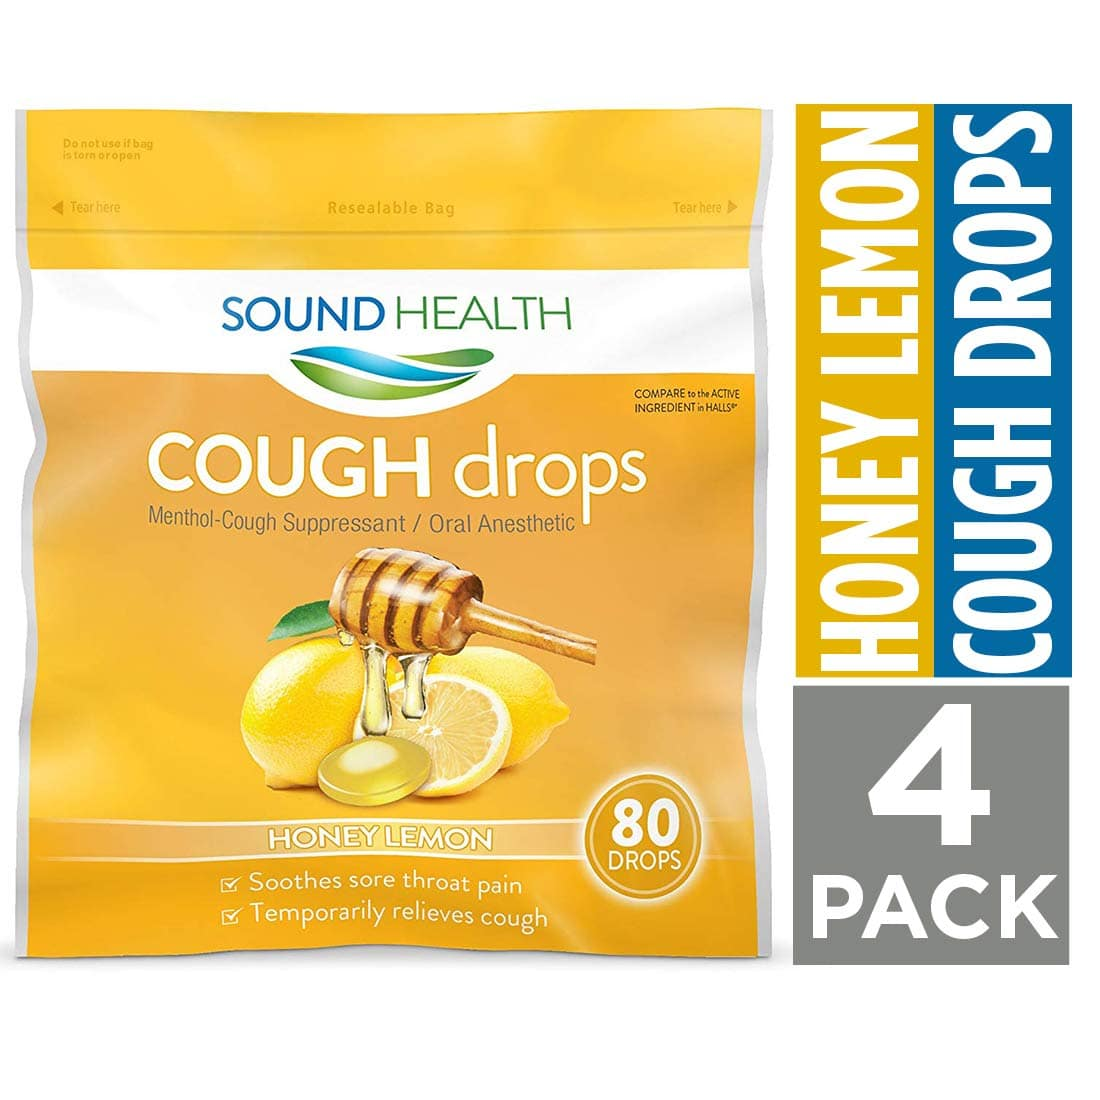 SoundHealth Honey Lemon Cough Drops - 80 count bags, pack of 4 - $6.94 after 15% off coupon and 5% S&S